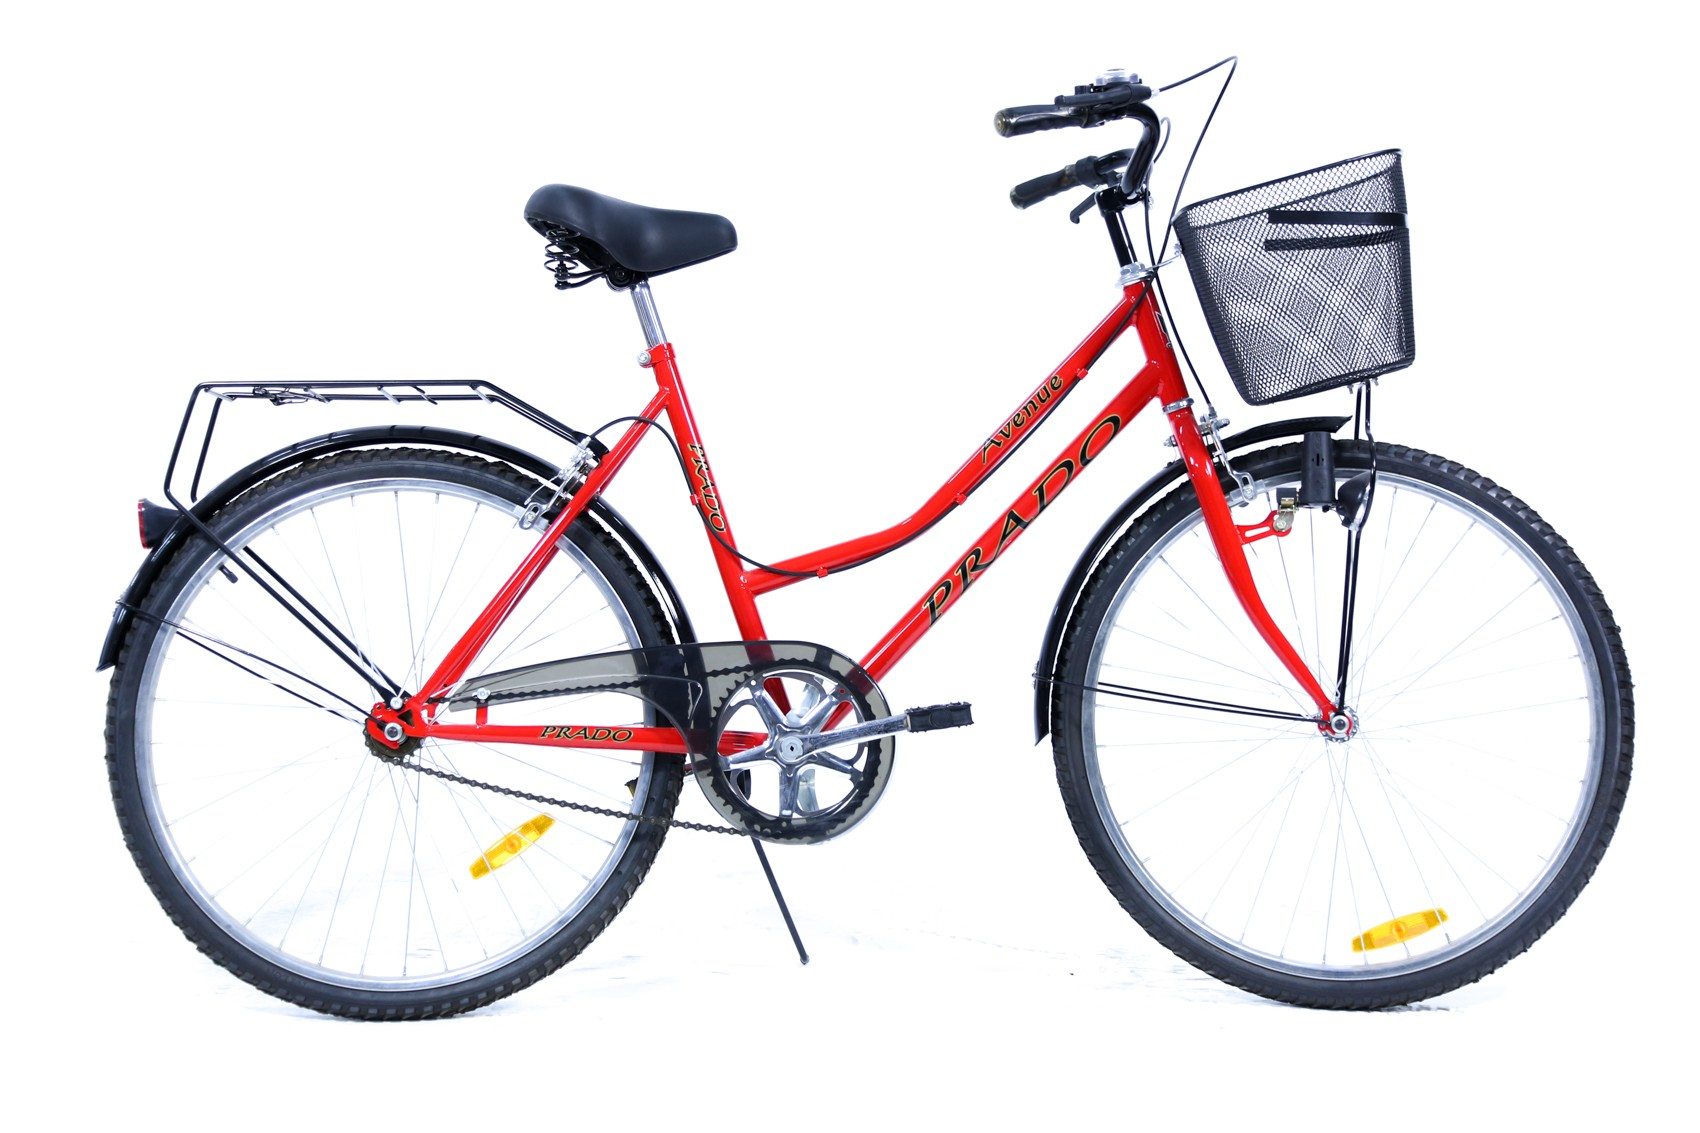 Bicyclette Image vente bicyclette | expressostore